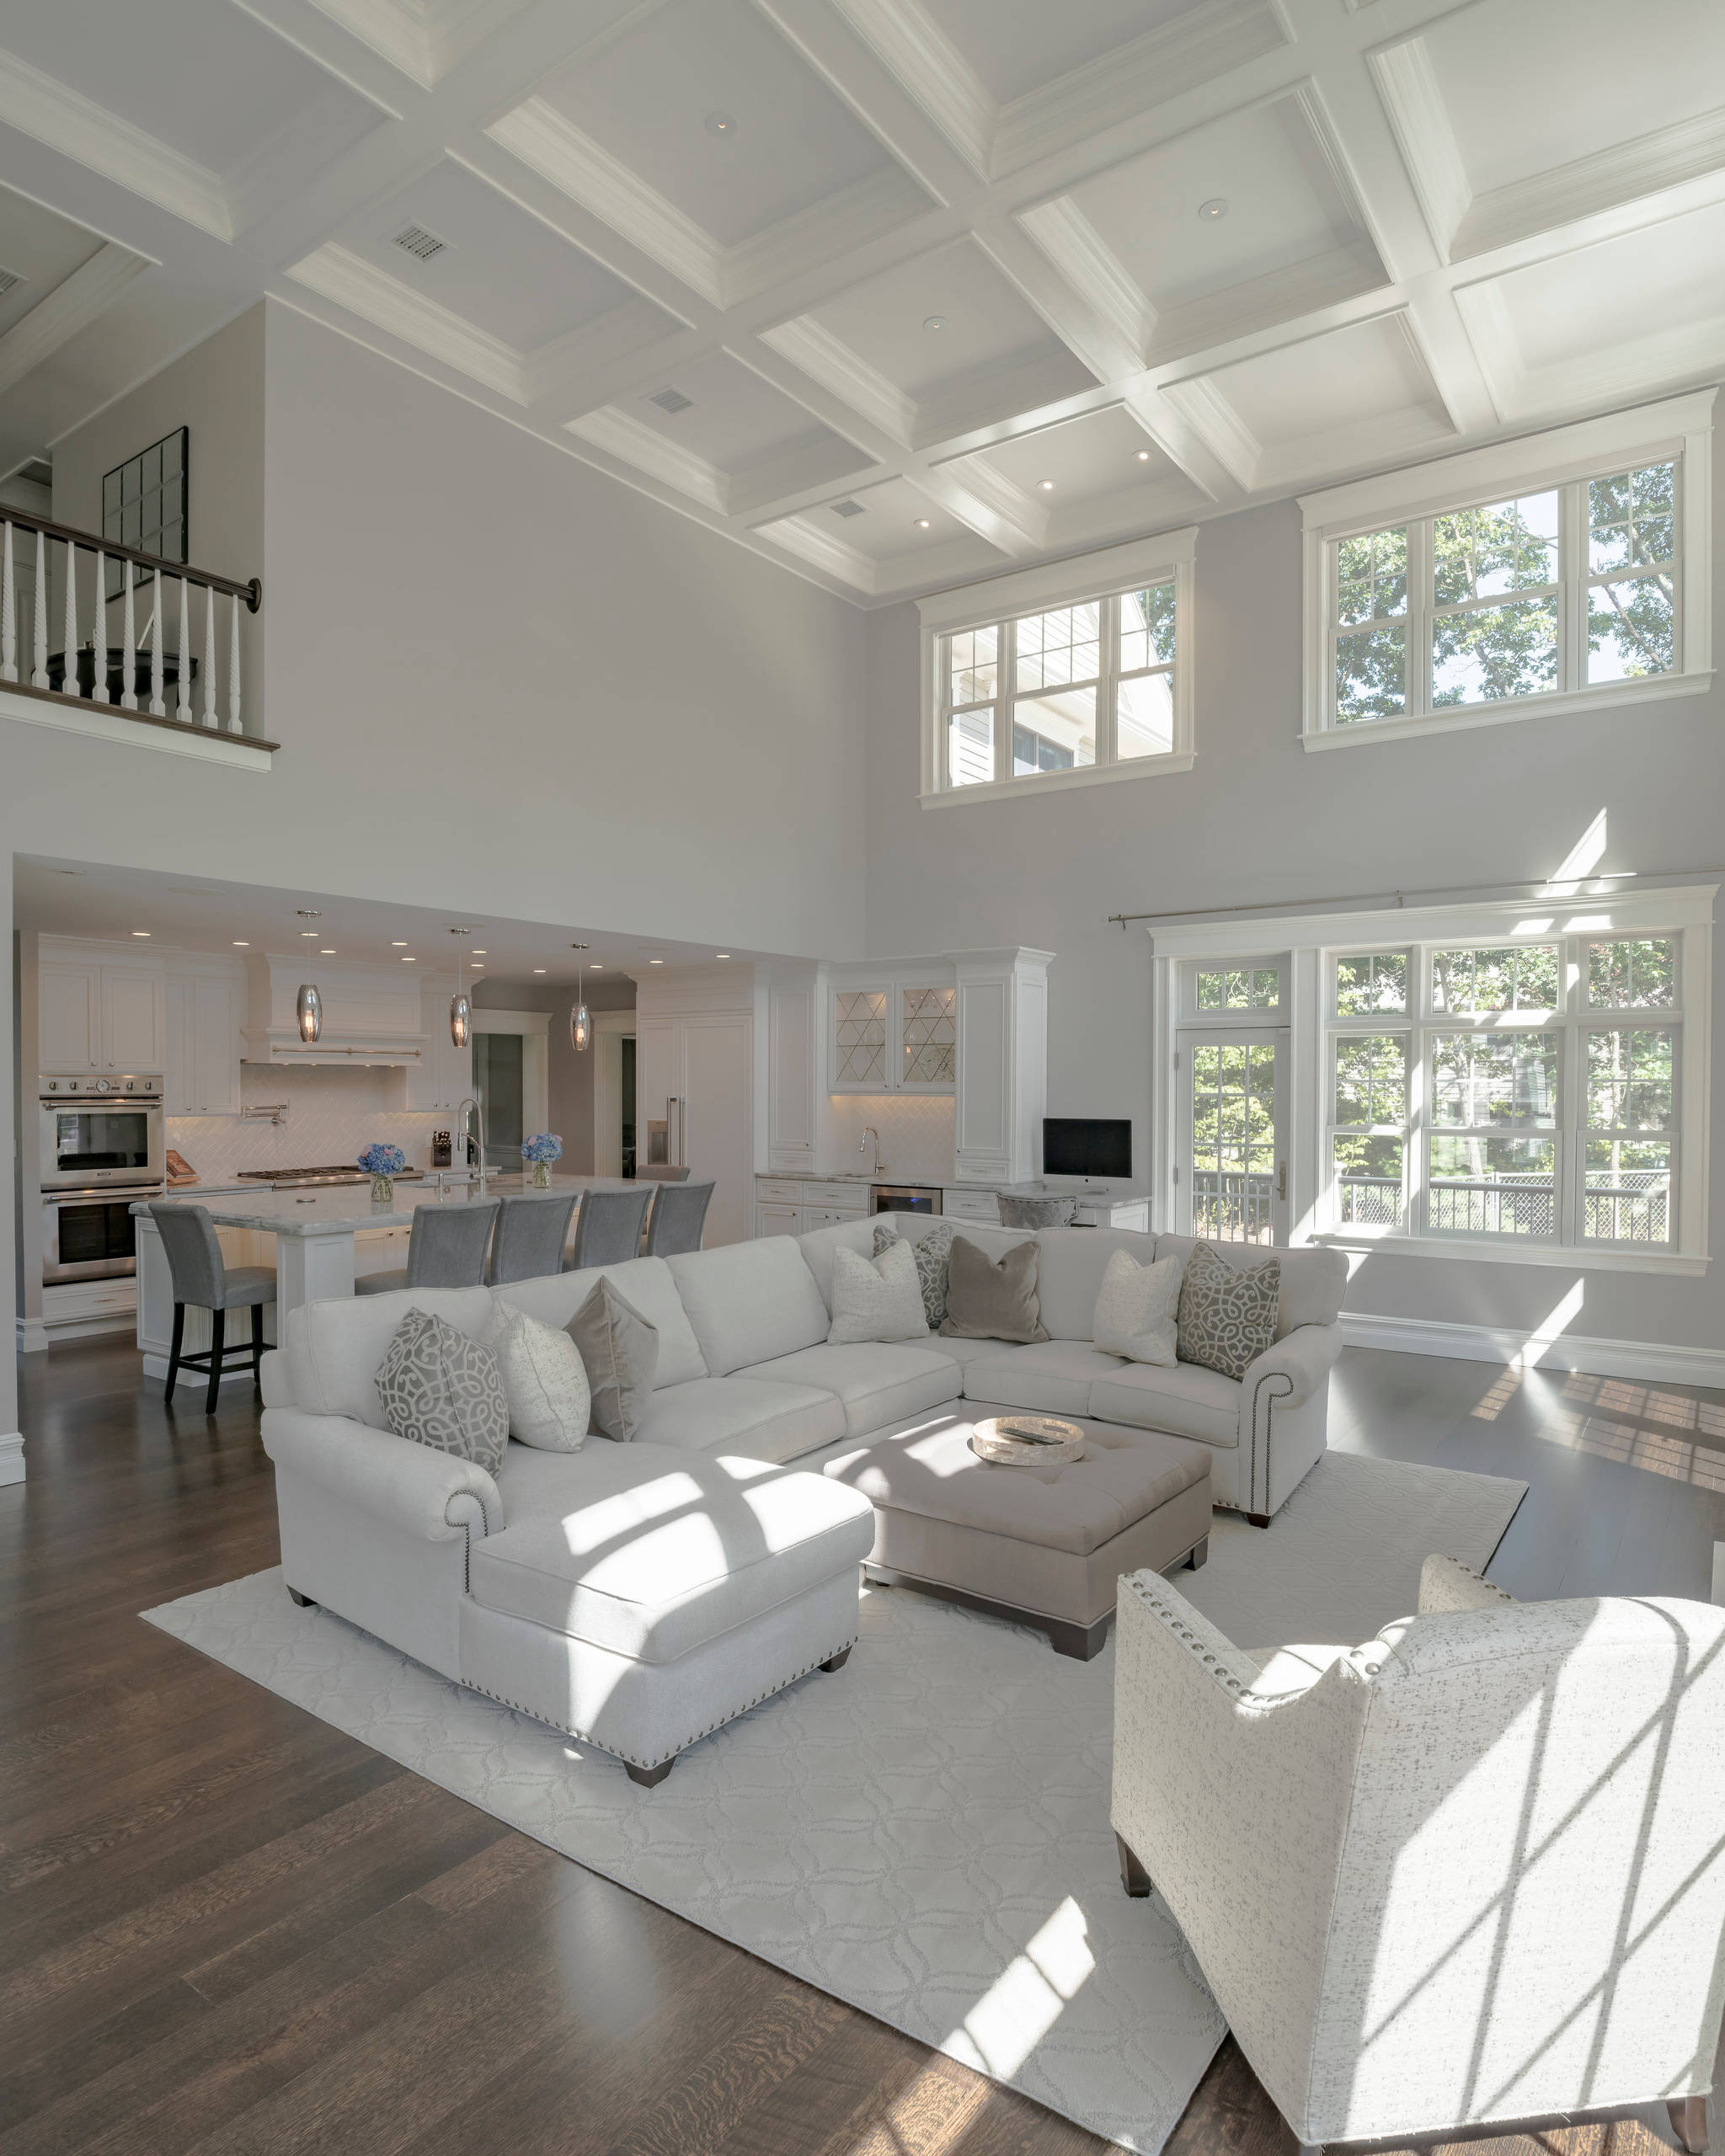 75 Beautiful Living Room With Beige Walls Pictures Ideas May 2021 Houzz